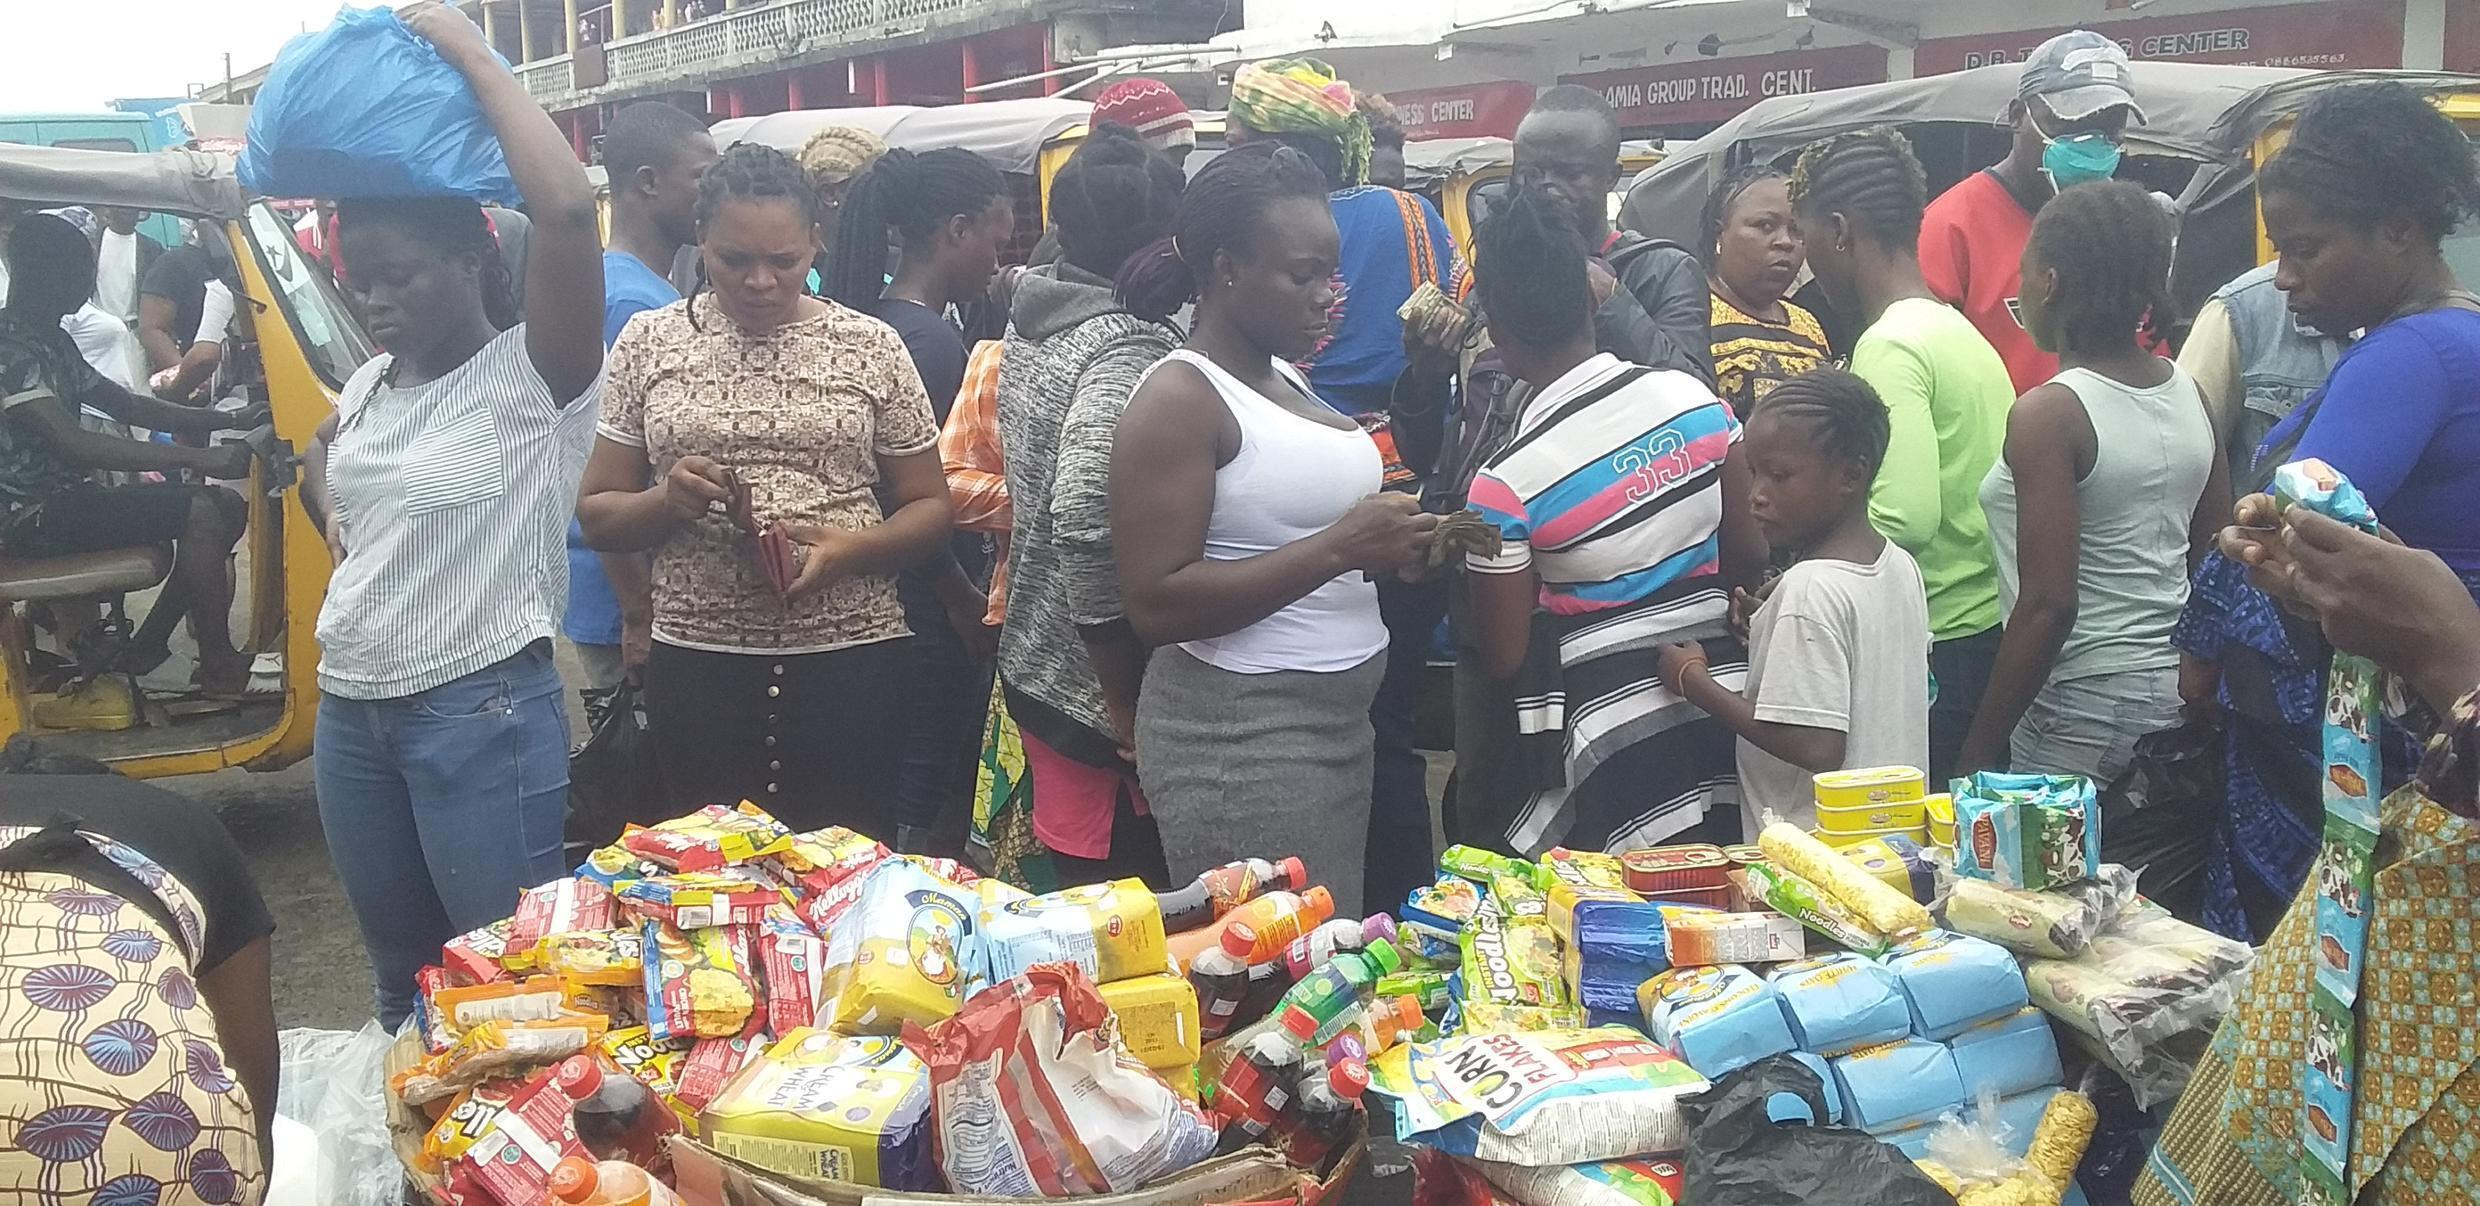 People rushing to buy food in Monrovia, Liberia before the Covid-19 lockdown on Saturday